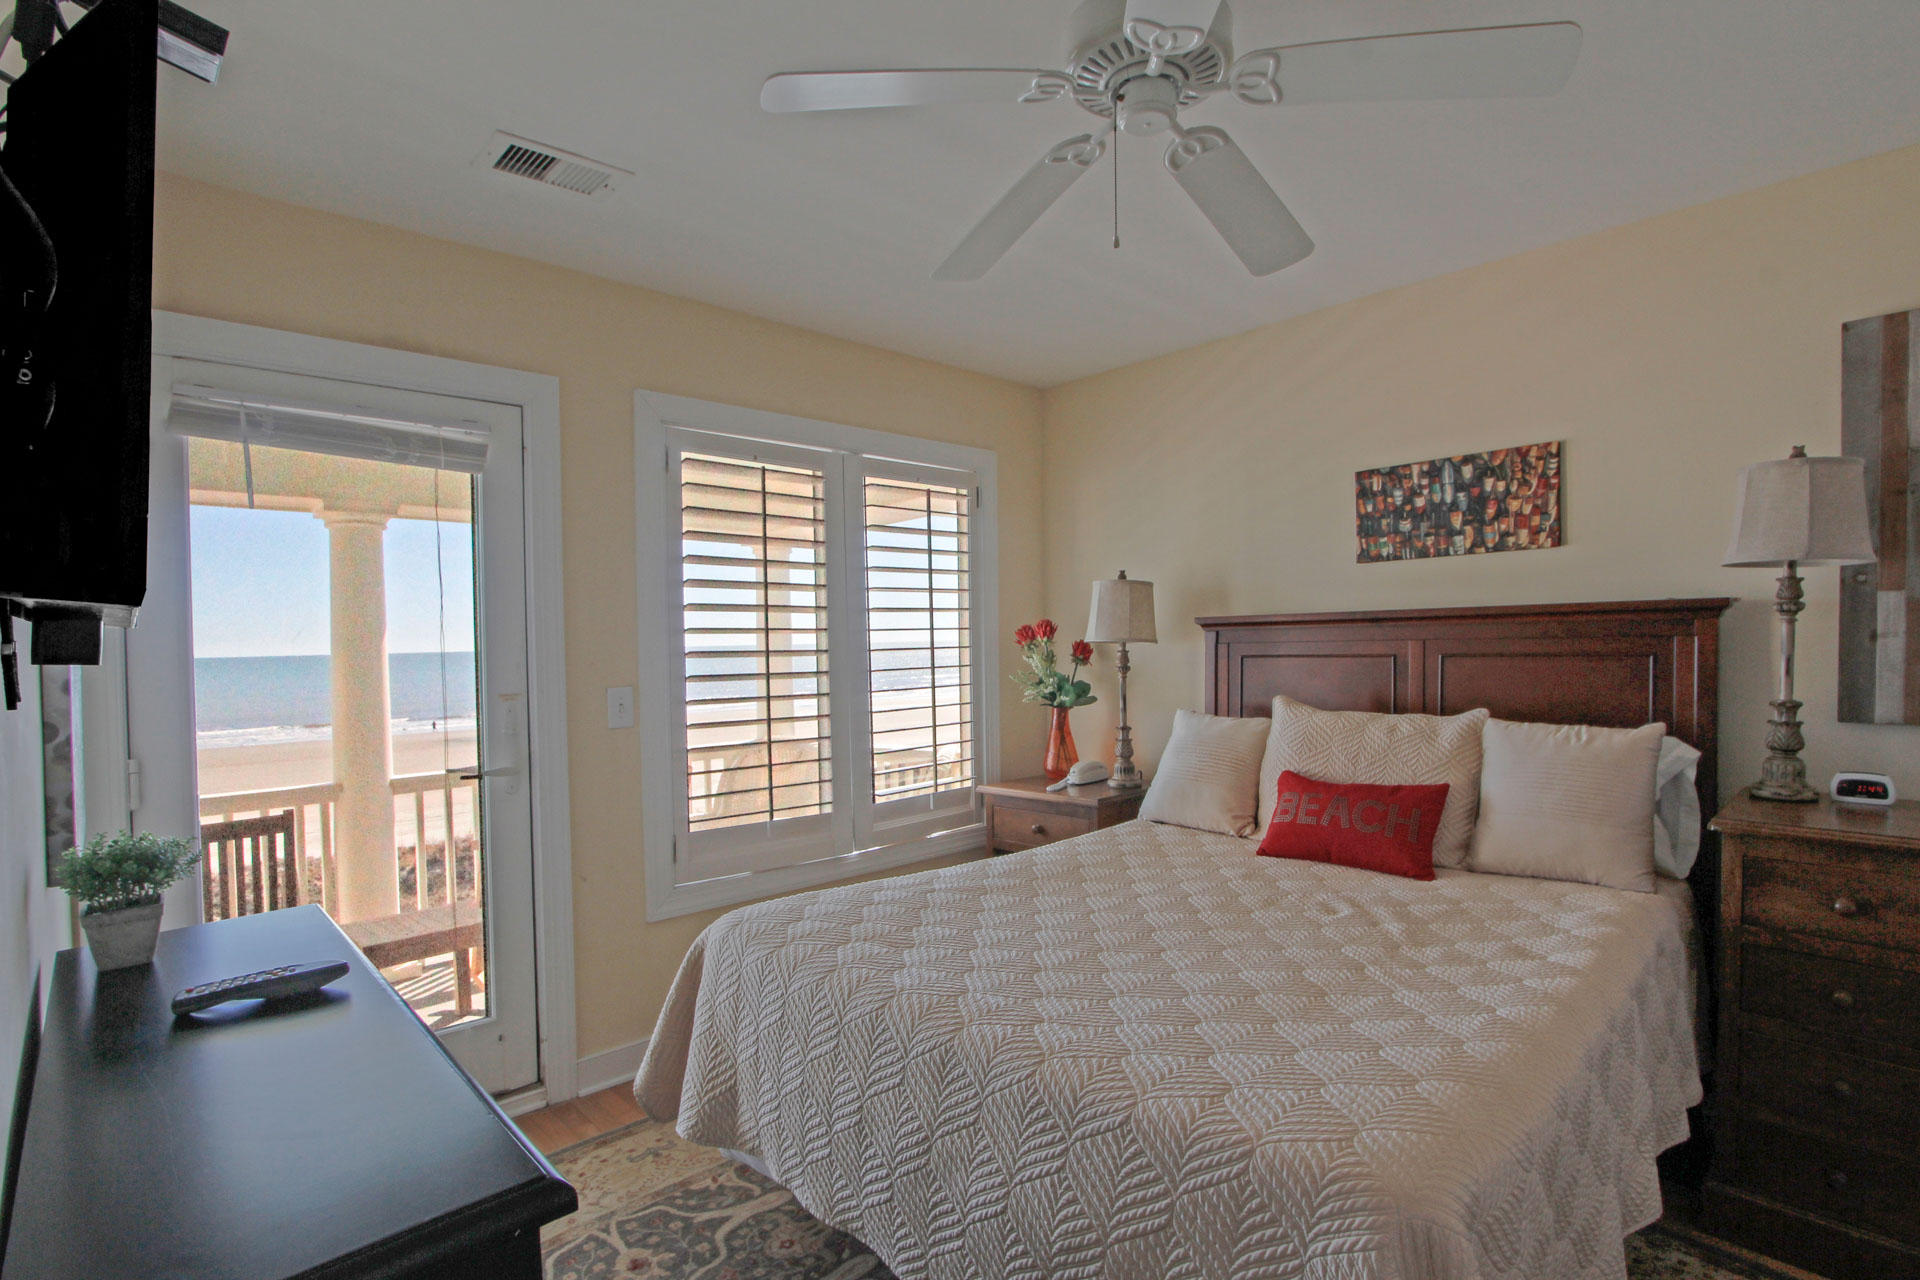 Isle of Palms Homes For Sale - 810 Ocean, Isle of Palms, SC - 9